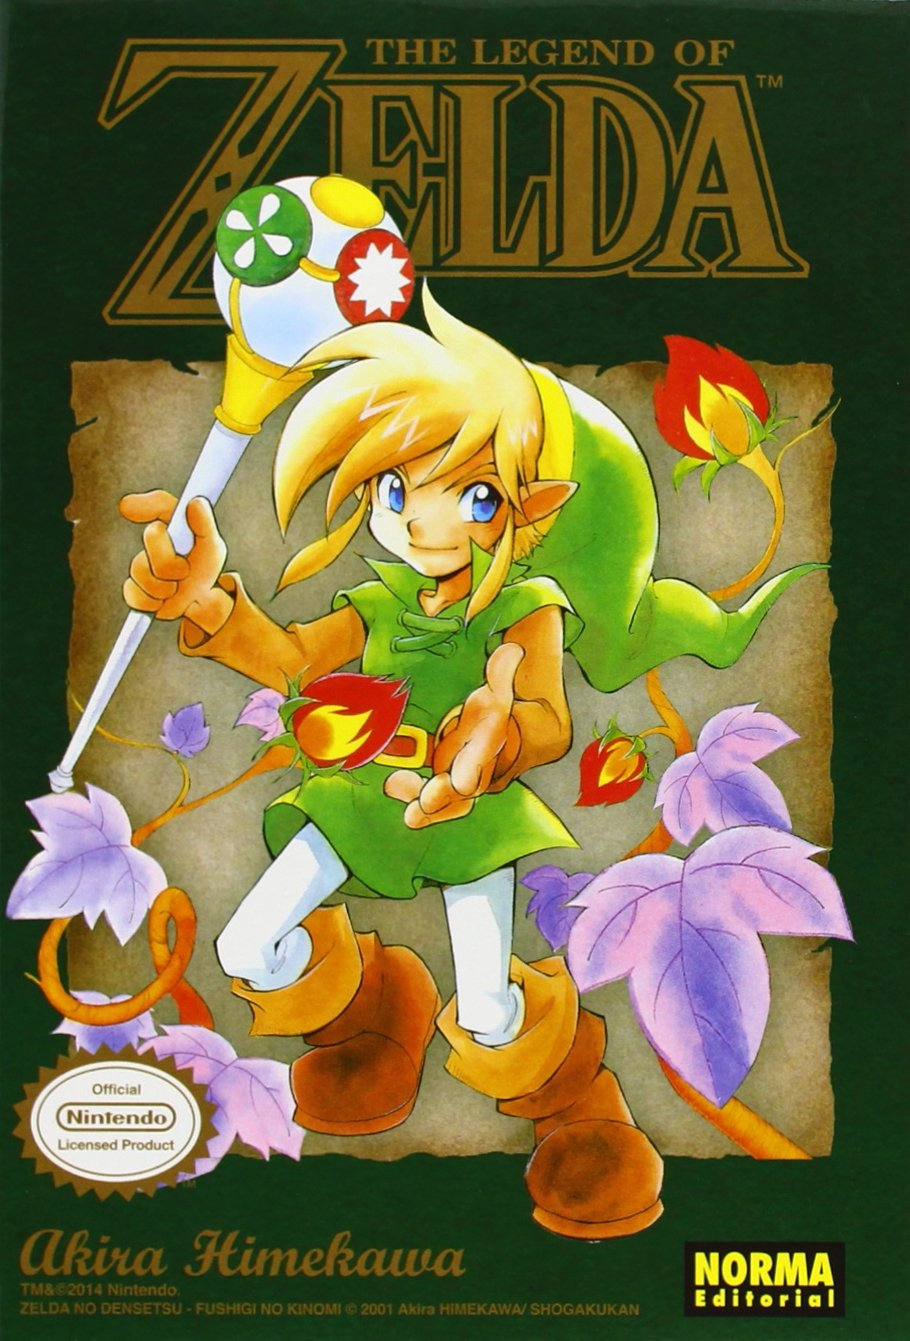 Pack The Legend Of Zelda - Volúmenes 6 A 10: Amazon.es: Himekawa Akira: Libros